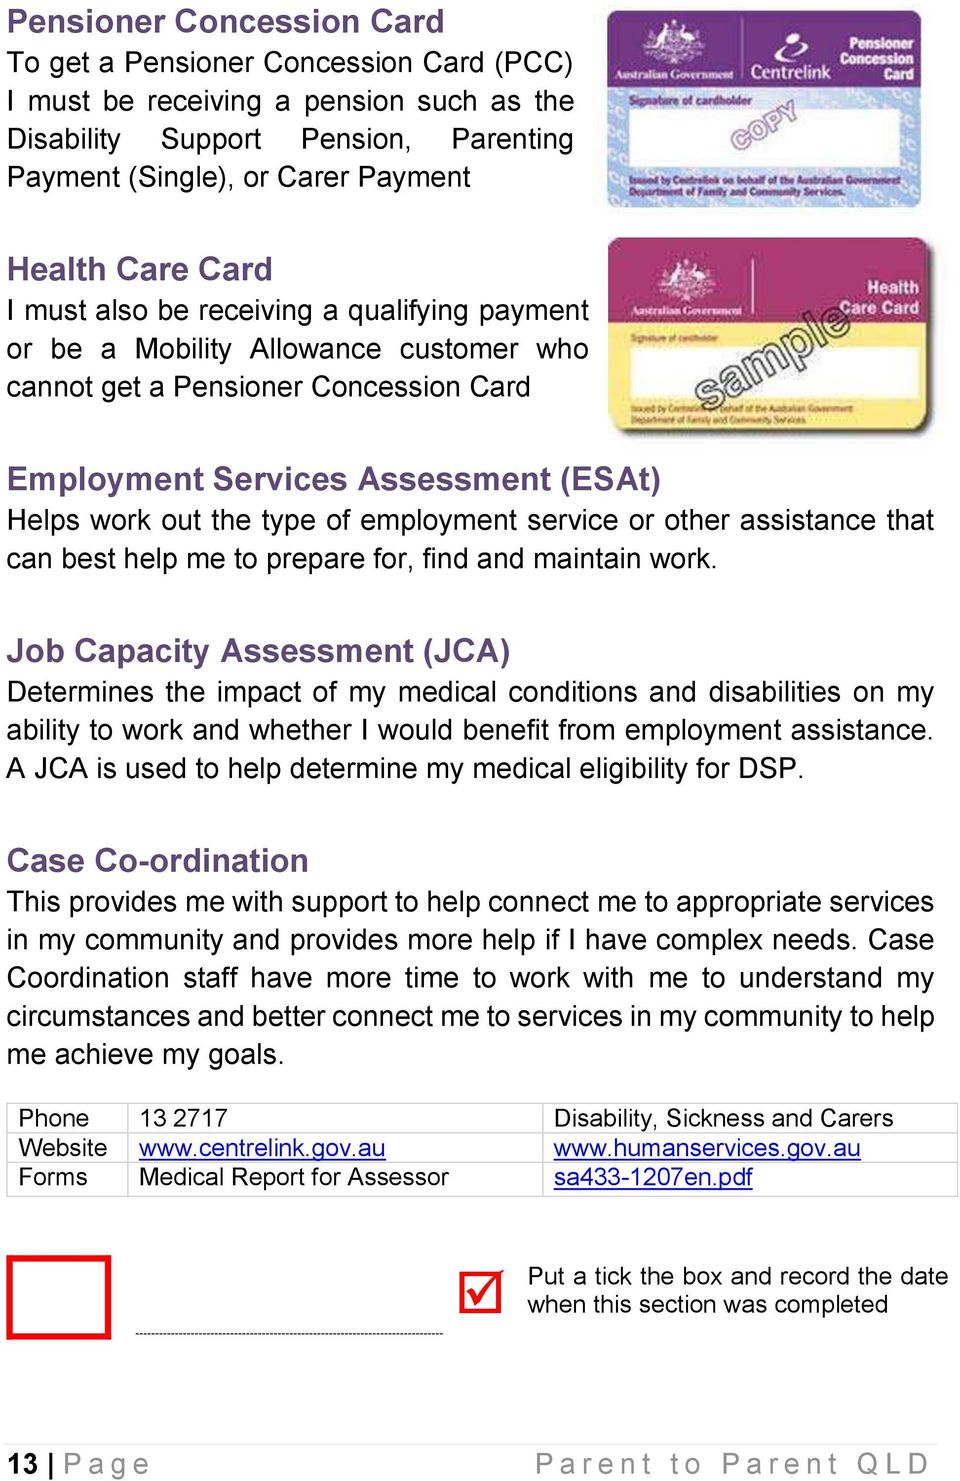 employment service or other assistance that can best help me to prepare for, find and maintain work.